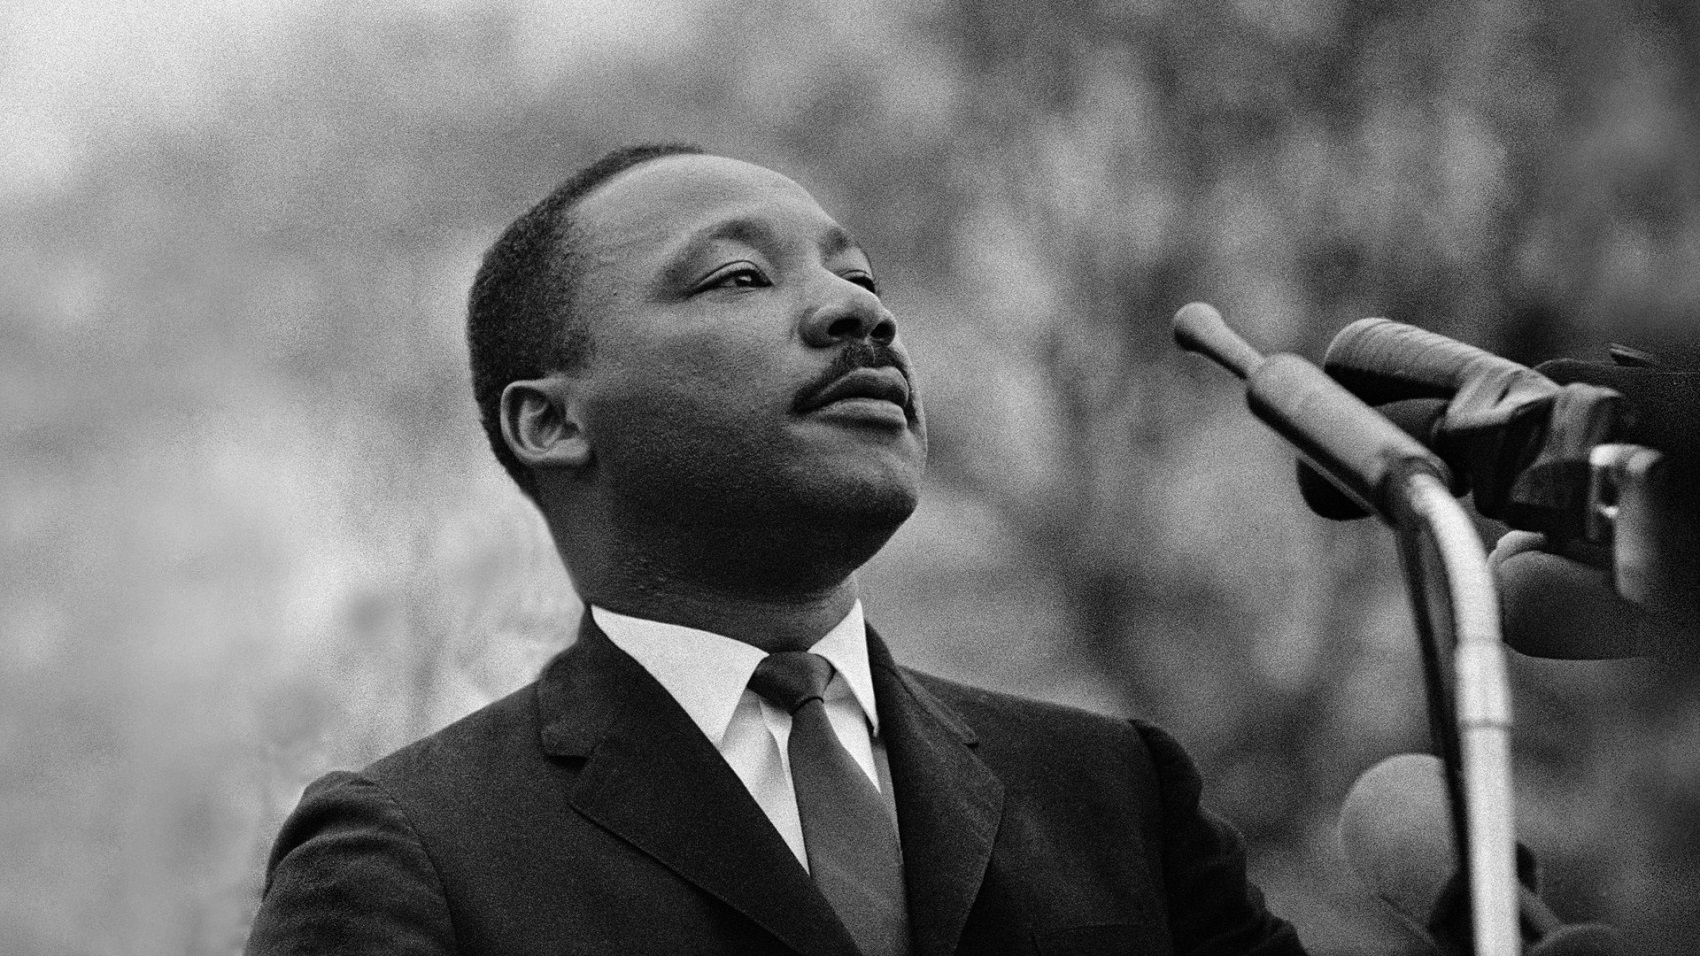 Martin Luther King Jr. takes fight North at spillwords.com